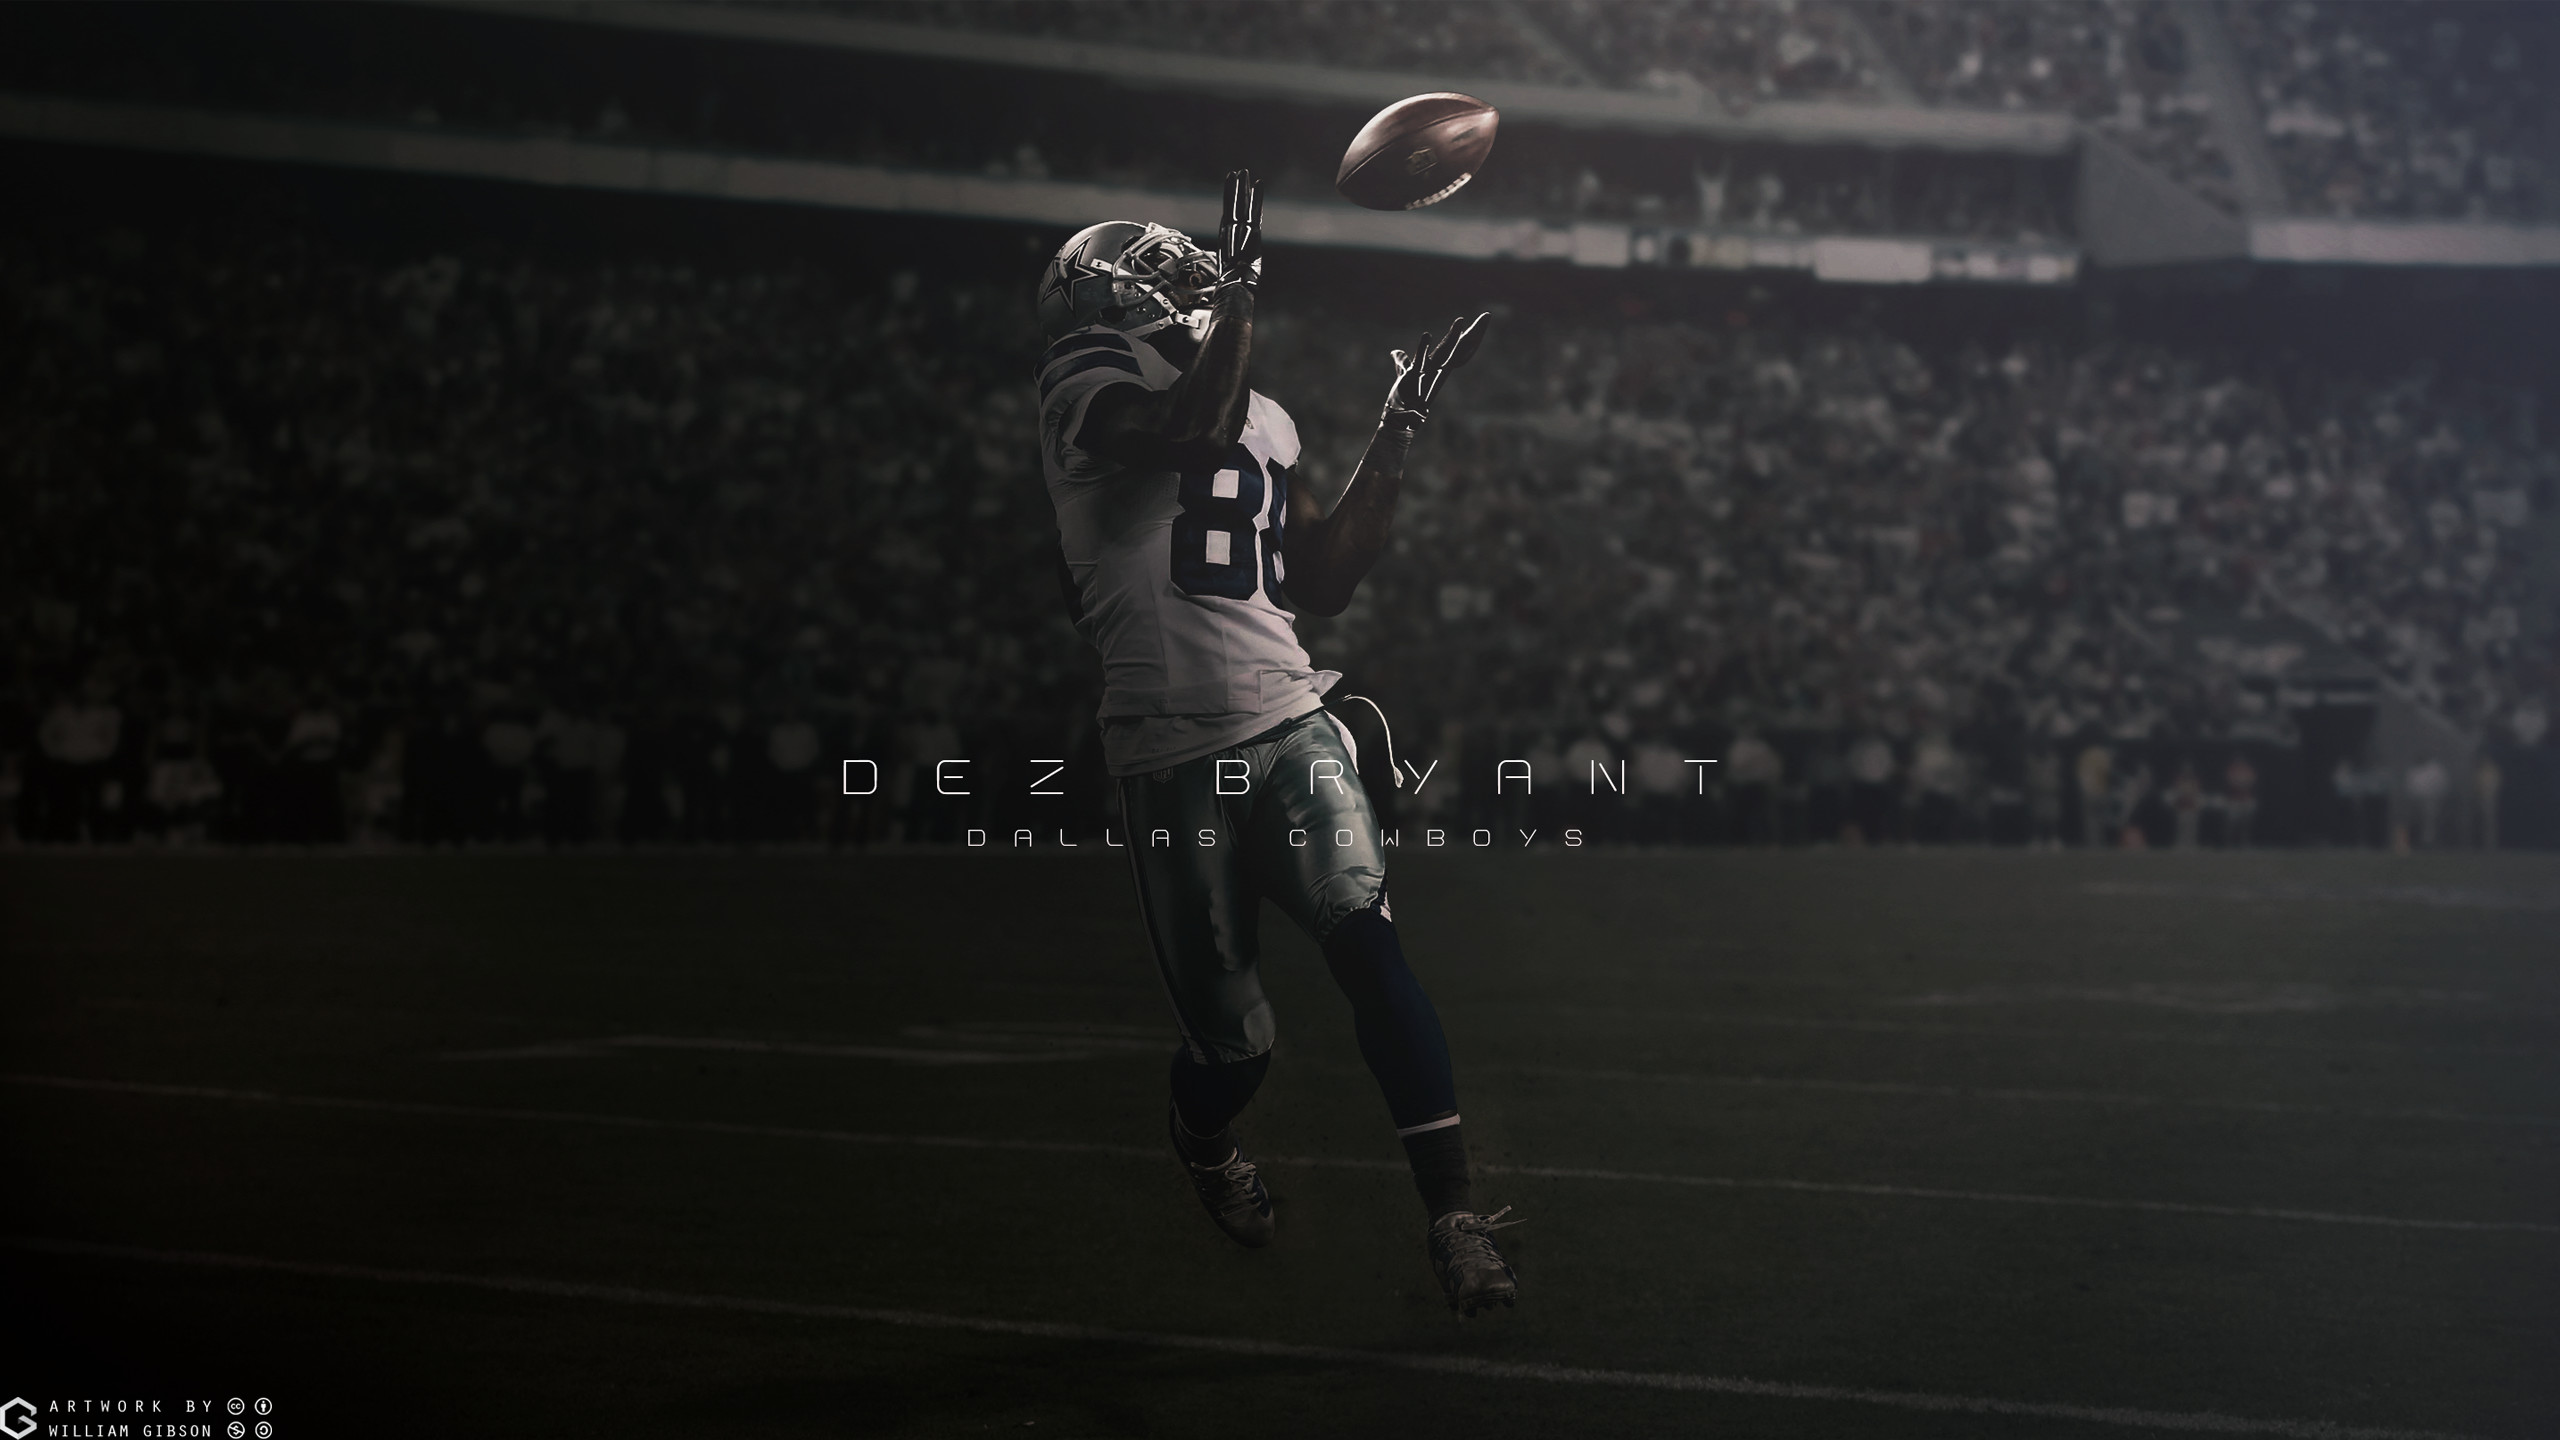 Tony Romo Iphone Wallpaper Dallas Cowboys Backgrounds For Desktop 183 ①